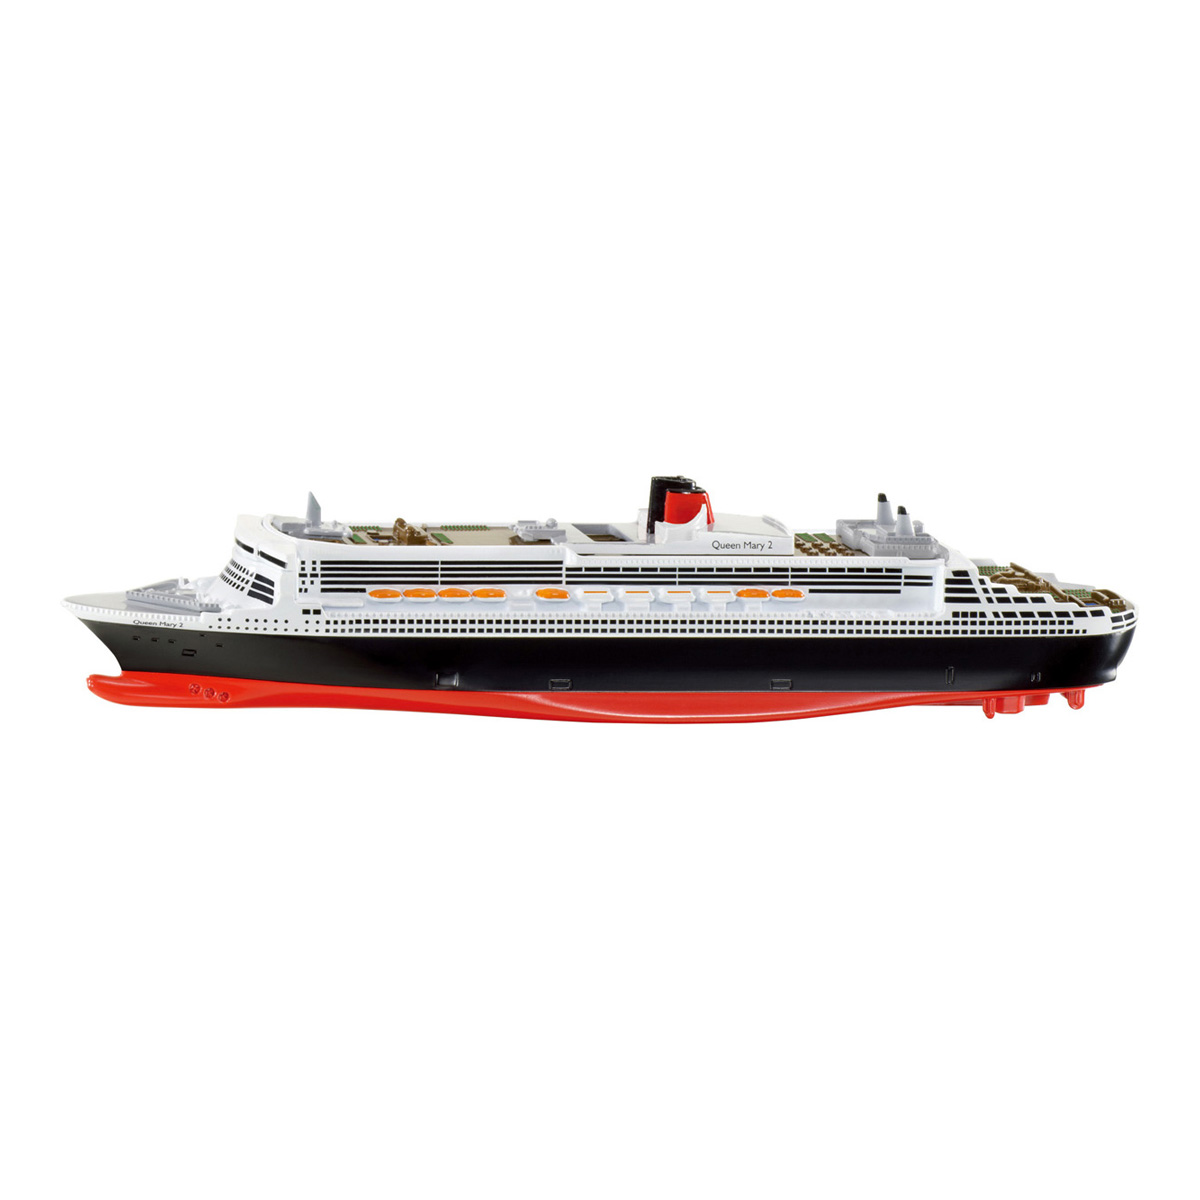 Queen Mary 2 1/1400(ジク・SIKU)